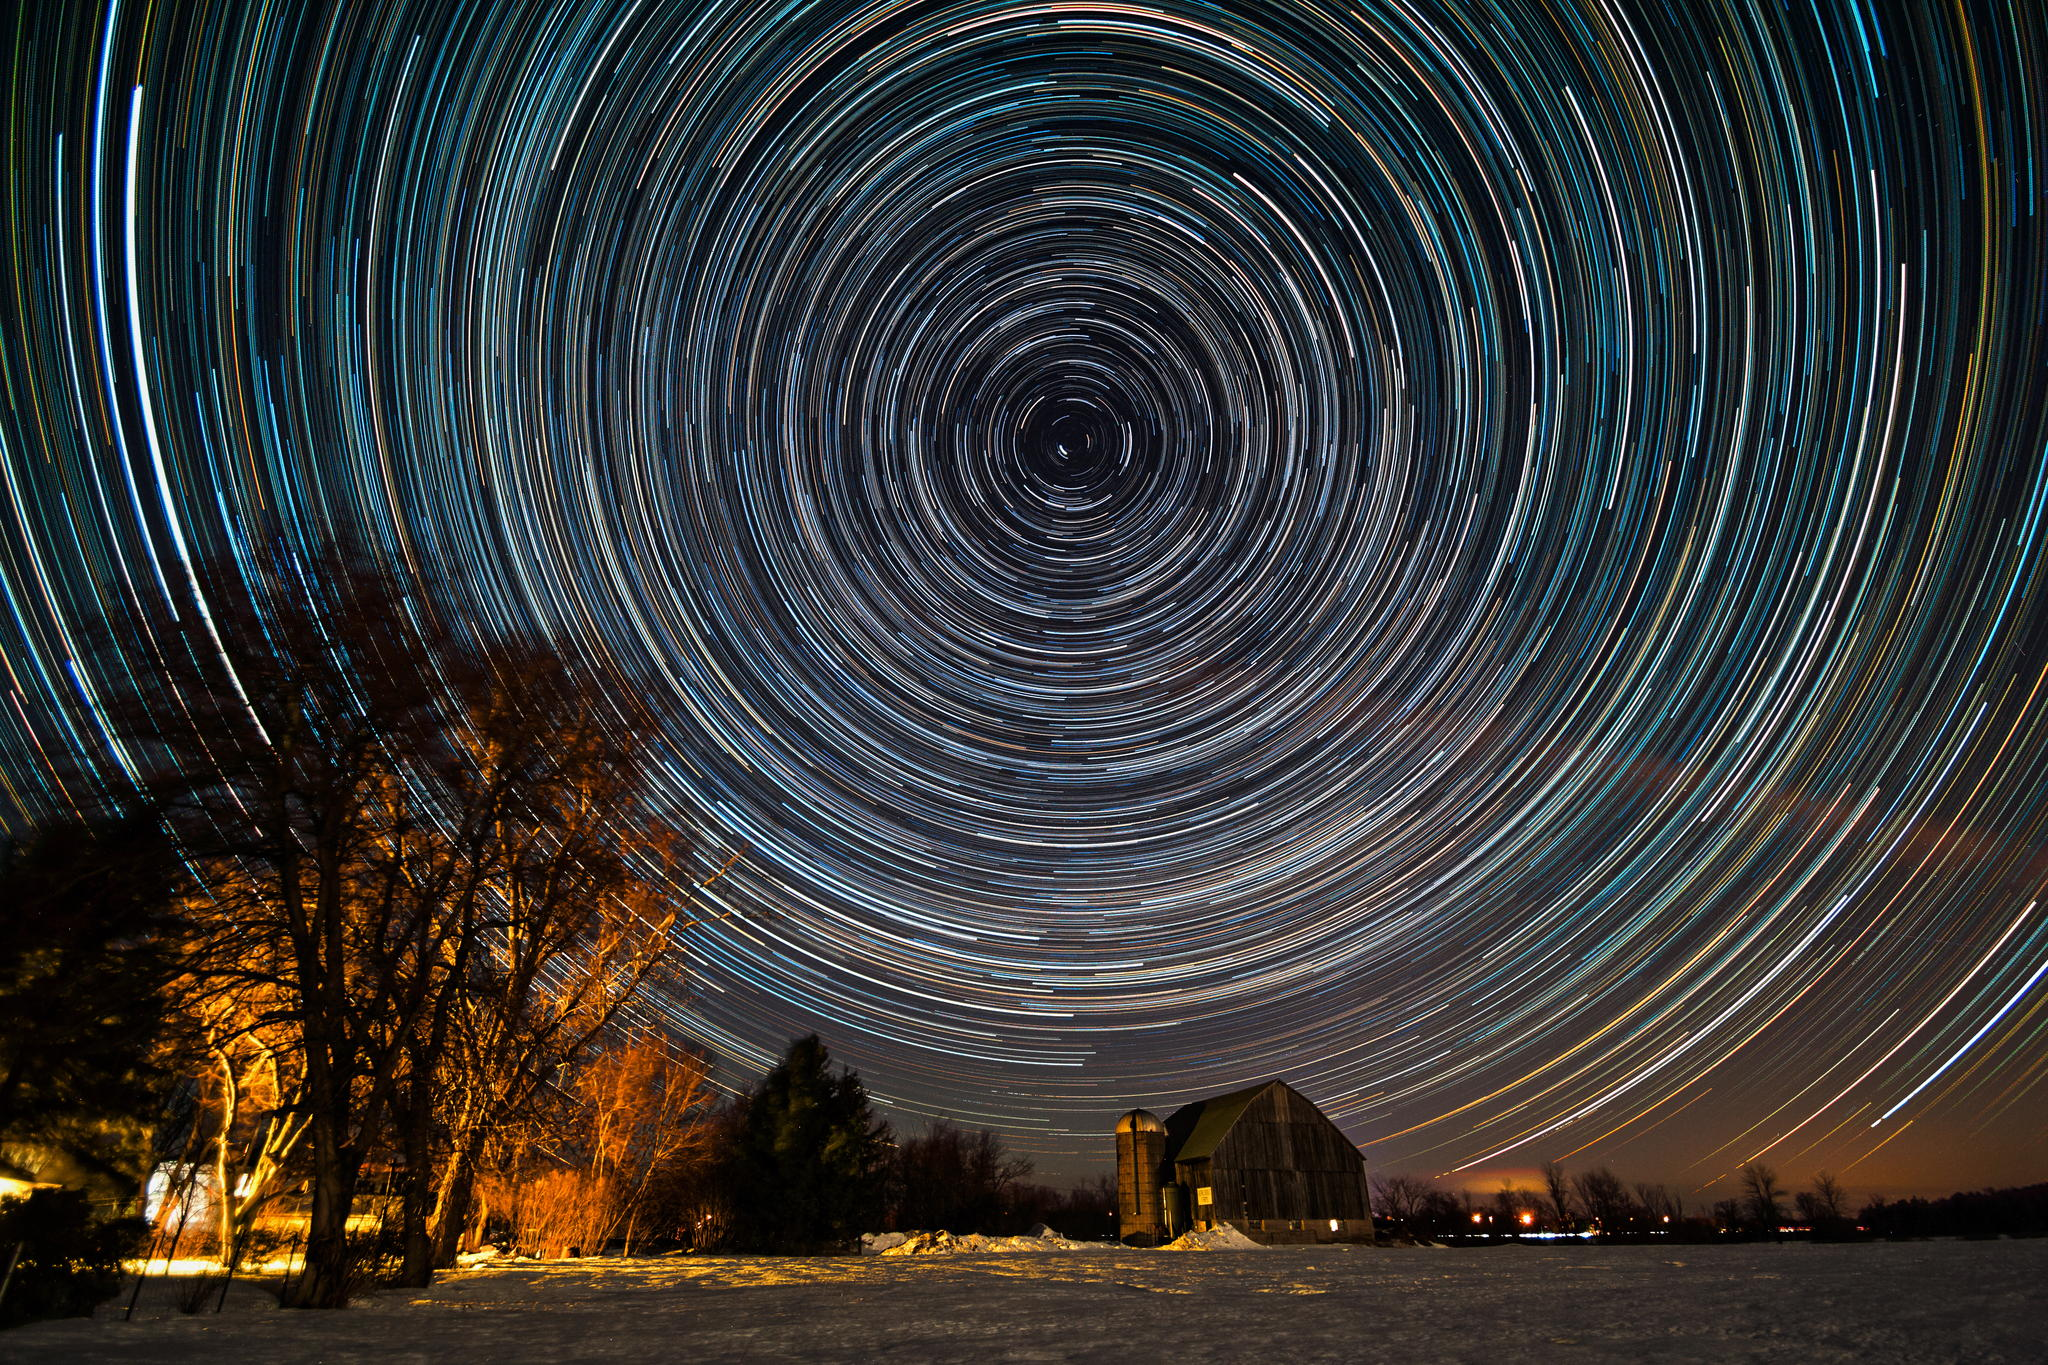 Photograph Forever Spinning by Matt Molloy on 500px